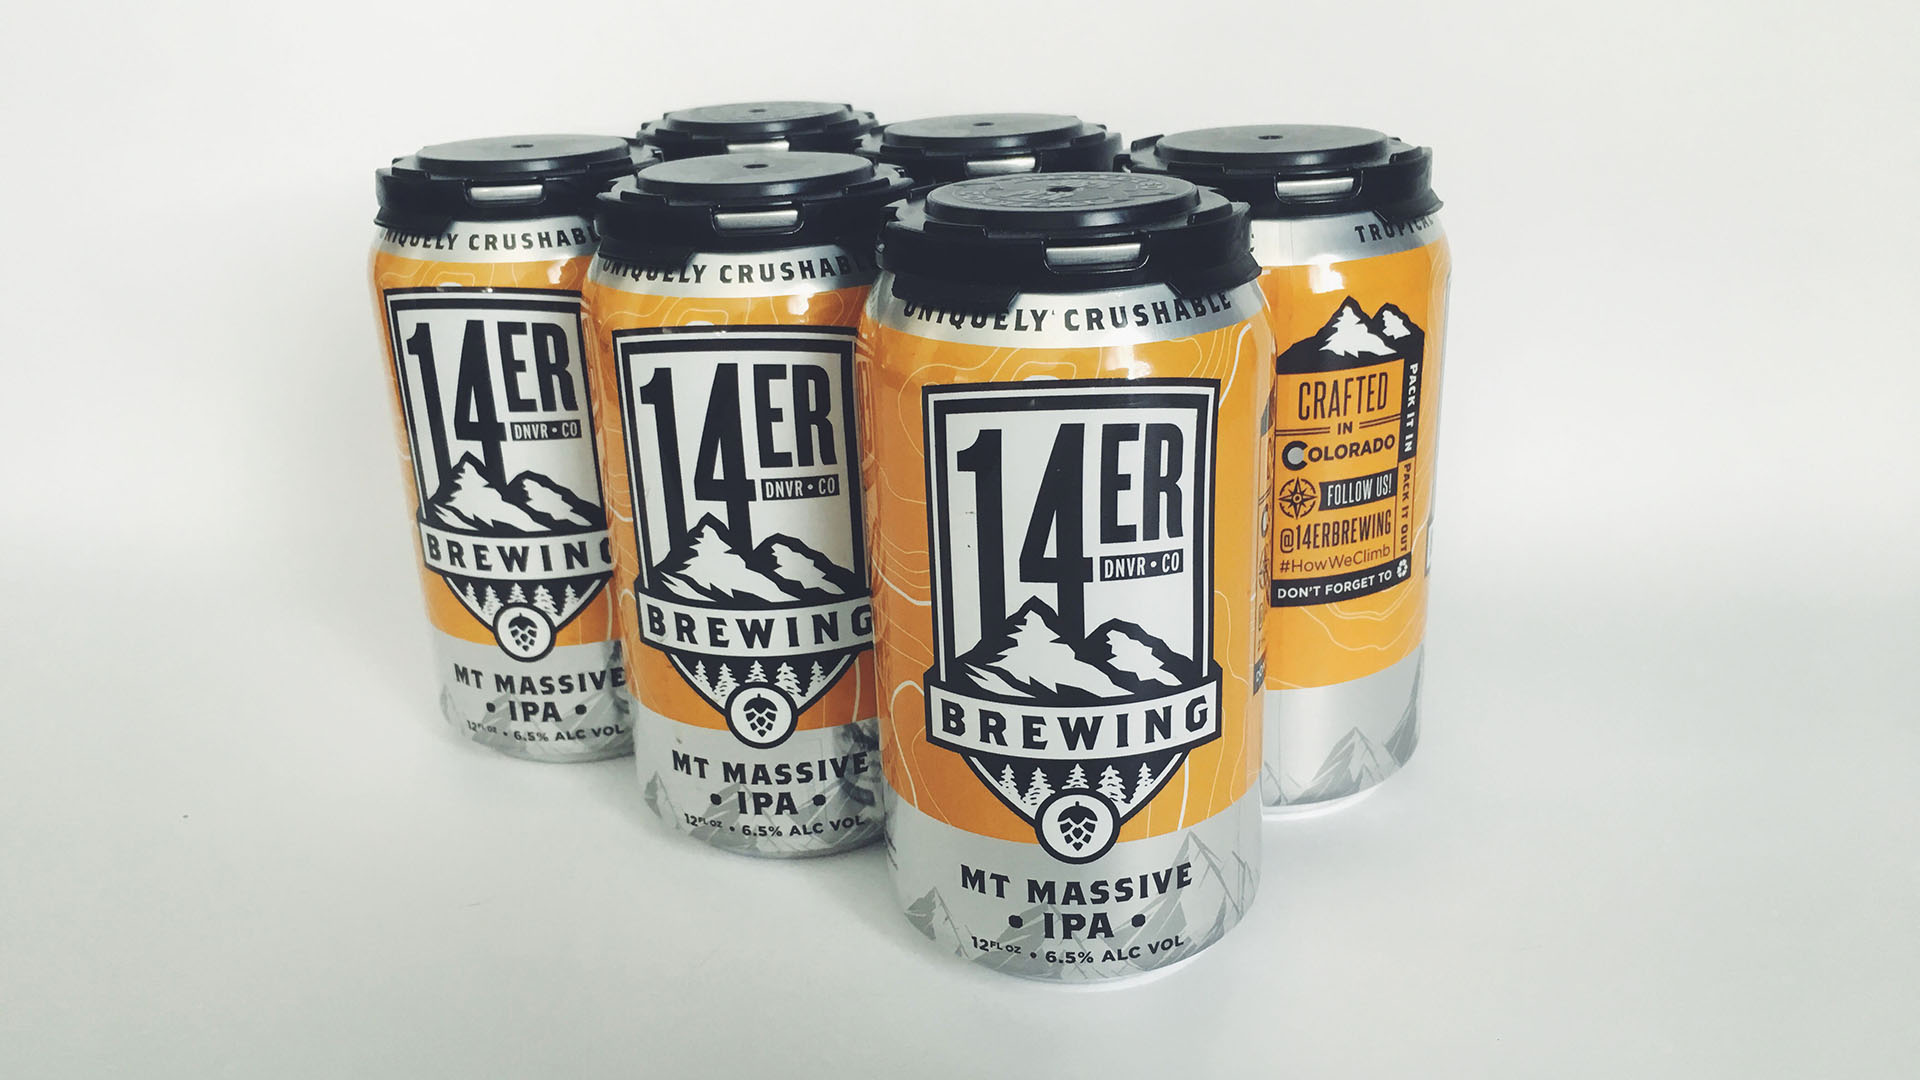 14er Brewing Co - IPA 6-Pack | Shane Harris